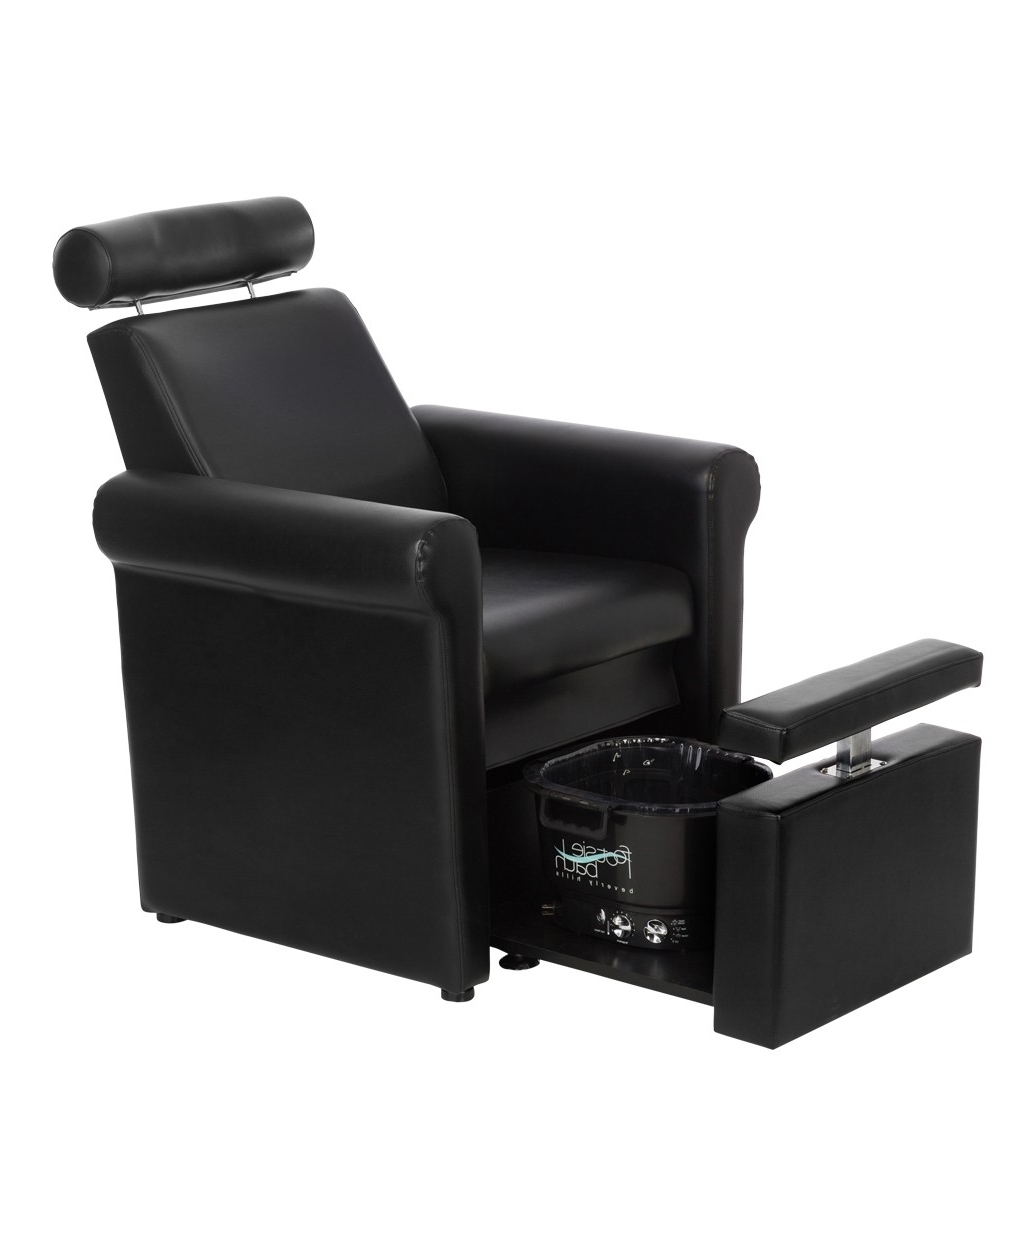 Favorite Sofa Pedicure Chairs Regarding Pedicure Stool With Footrest: Mona Lisa Pedicure Chair (View 3 of 20)